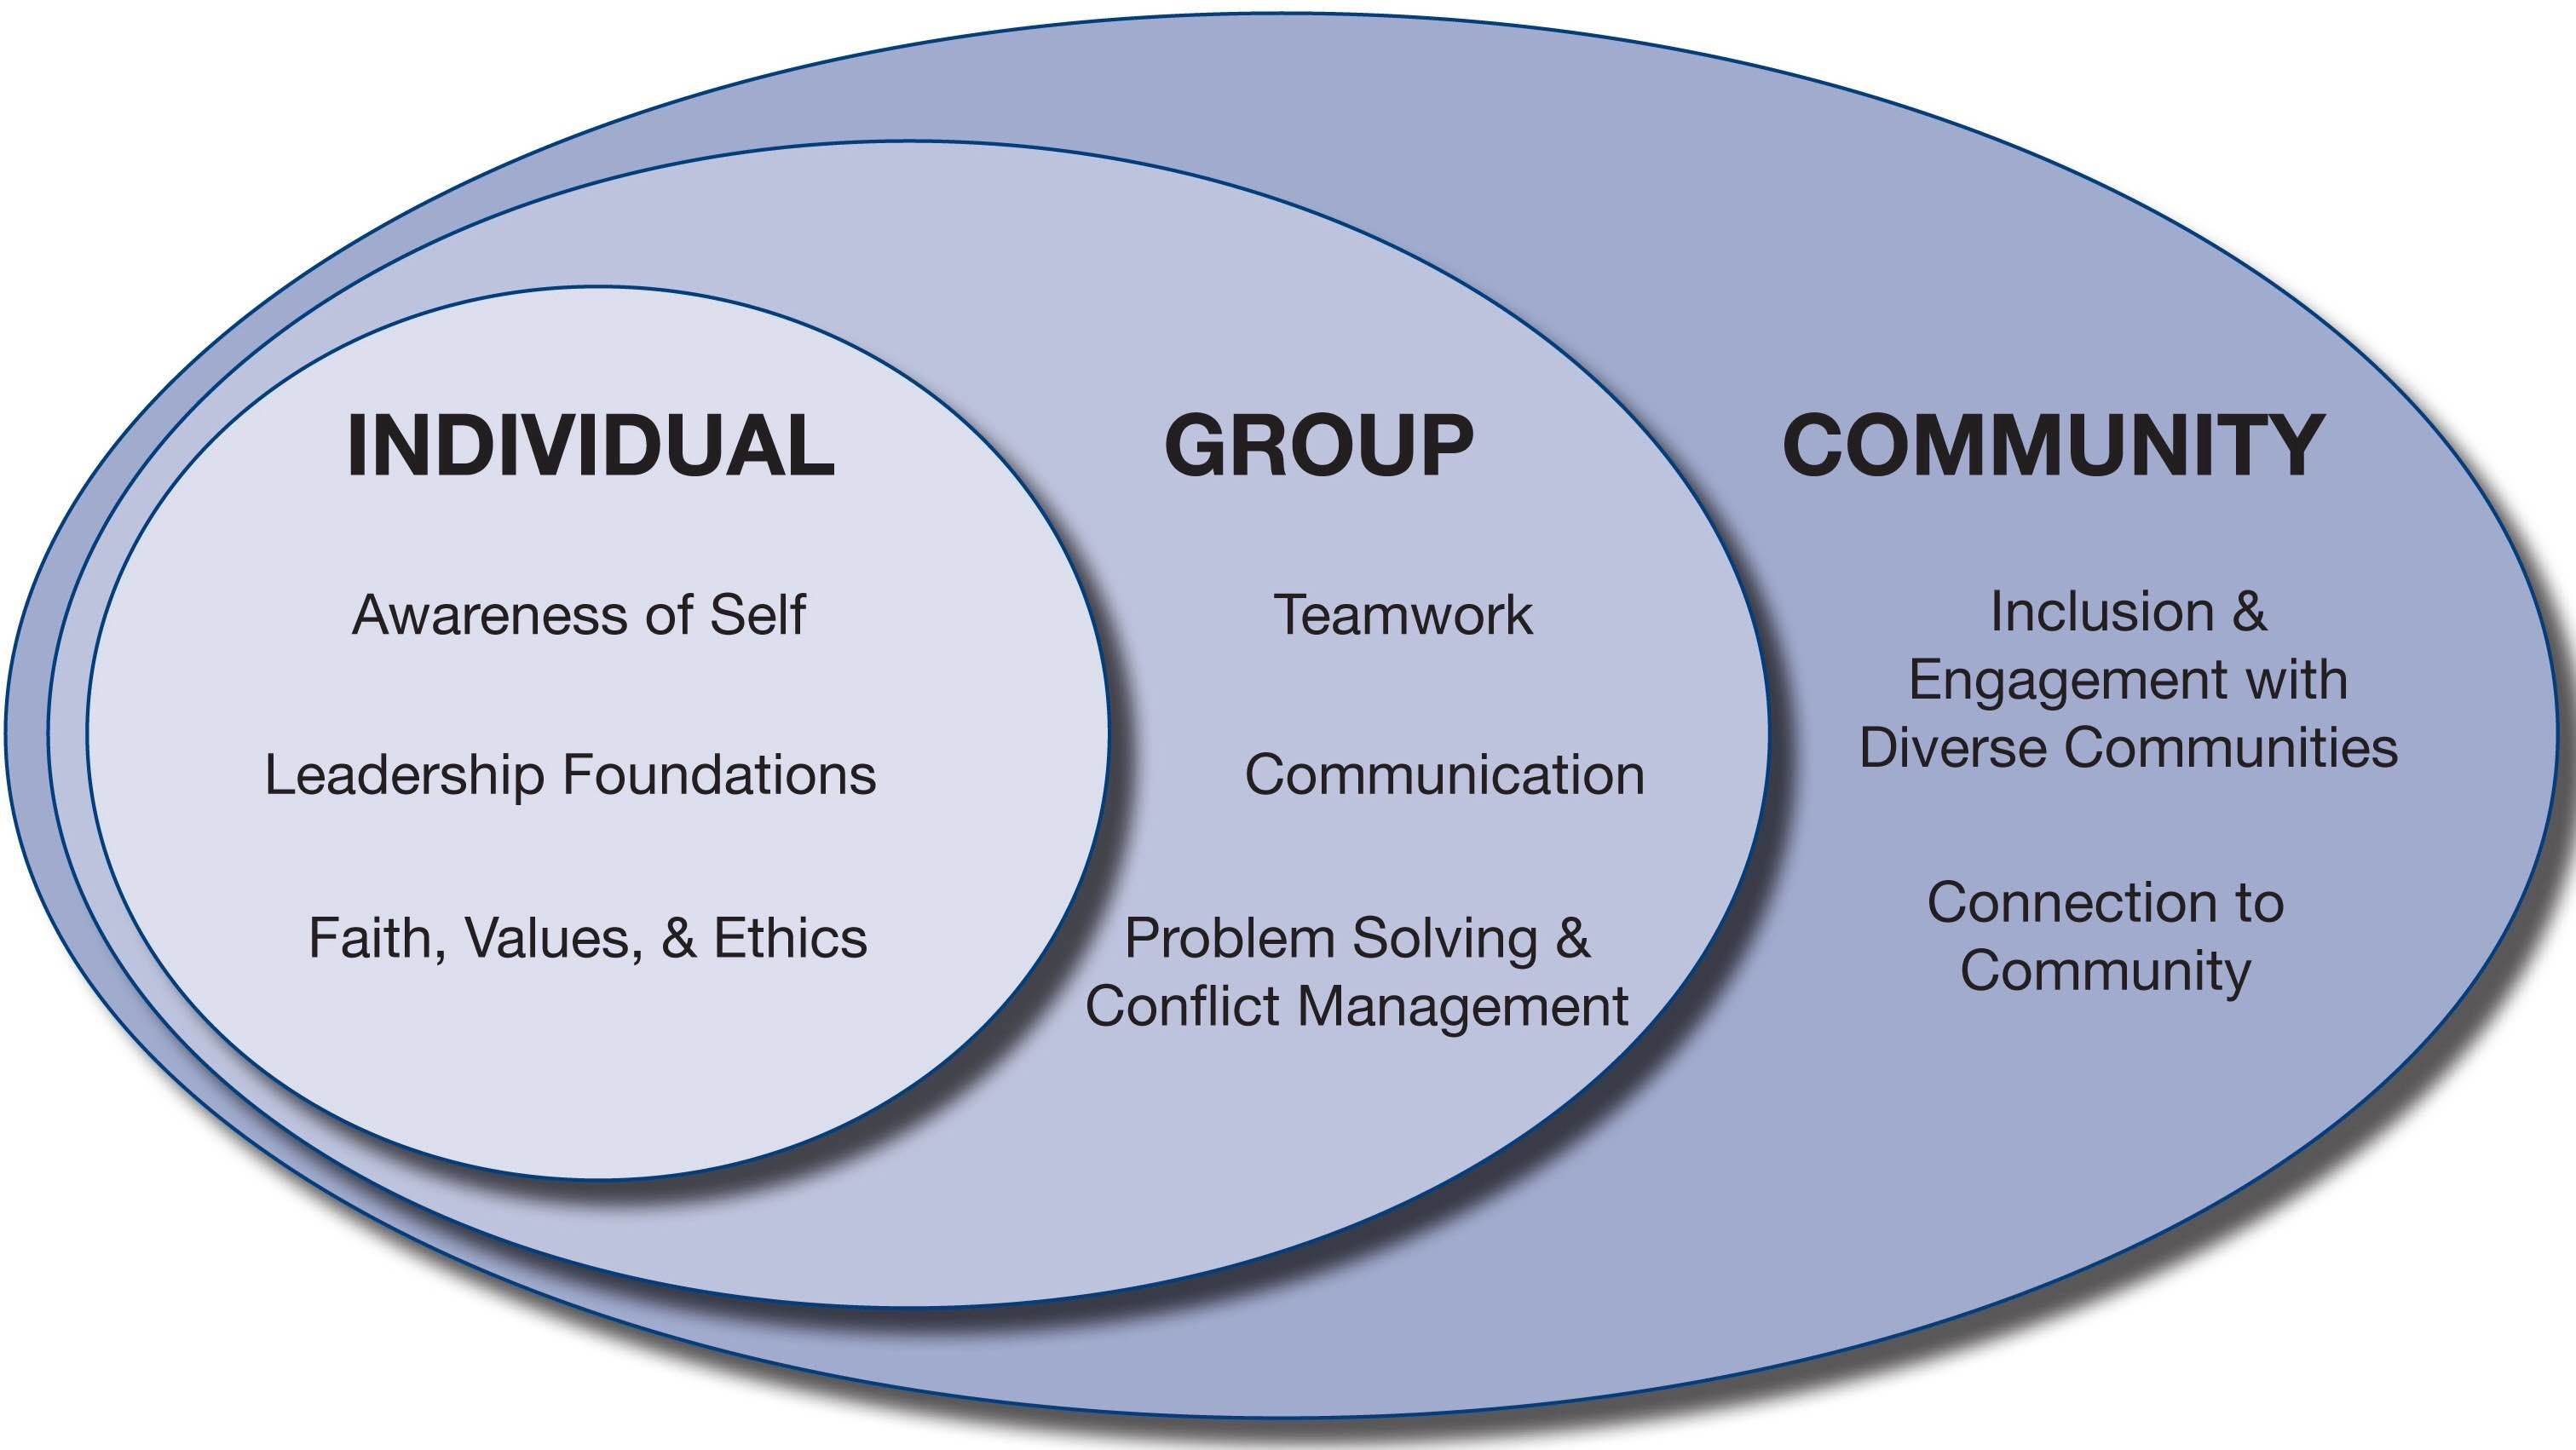 Individualgroupcommunity venn diagram higher education individualgroupcommunity venn diagram pooptronica